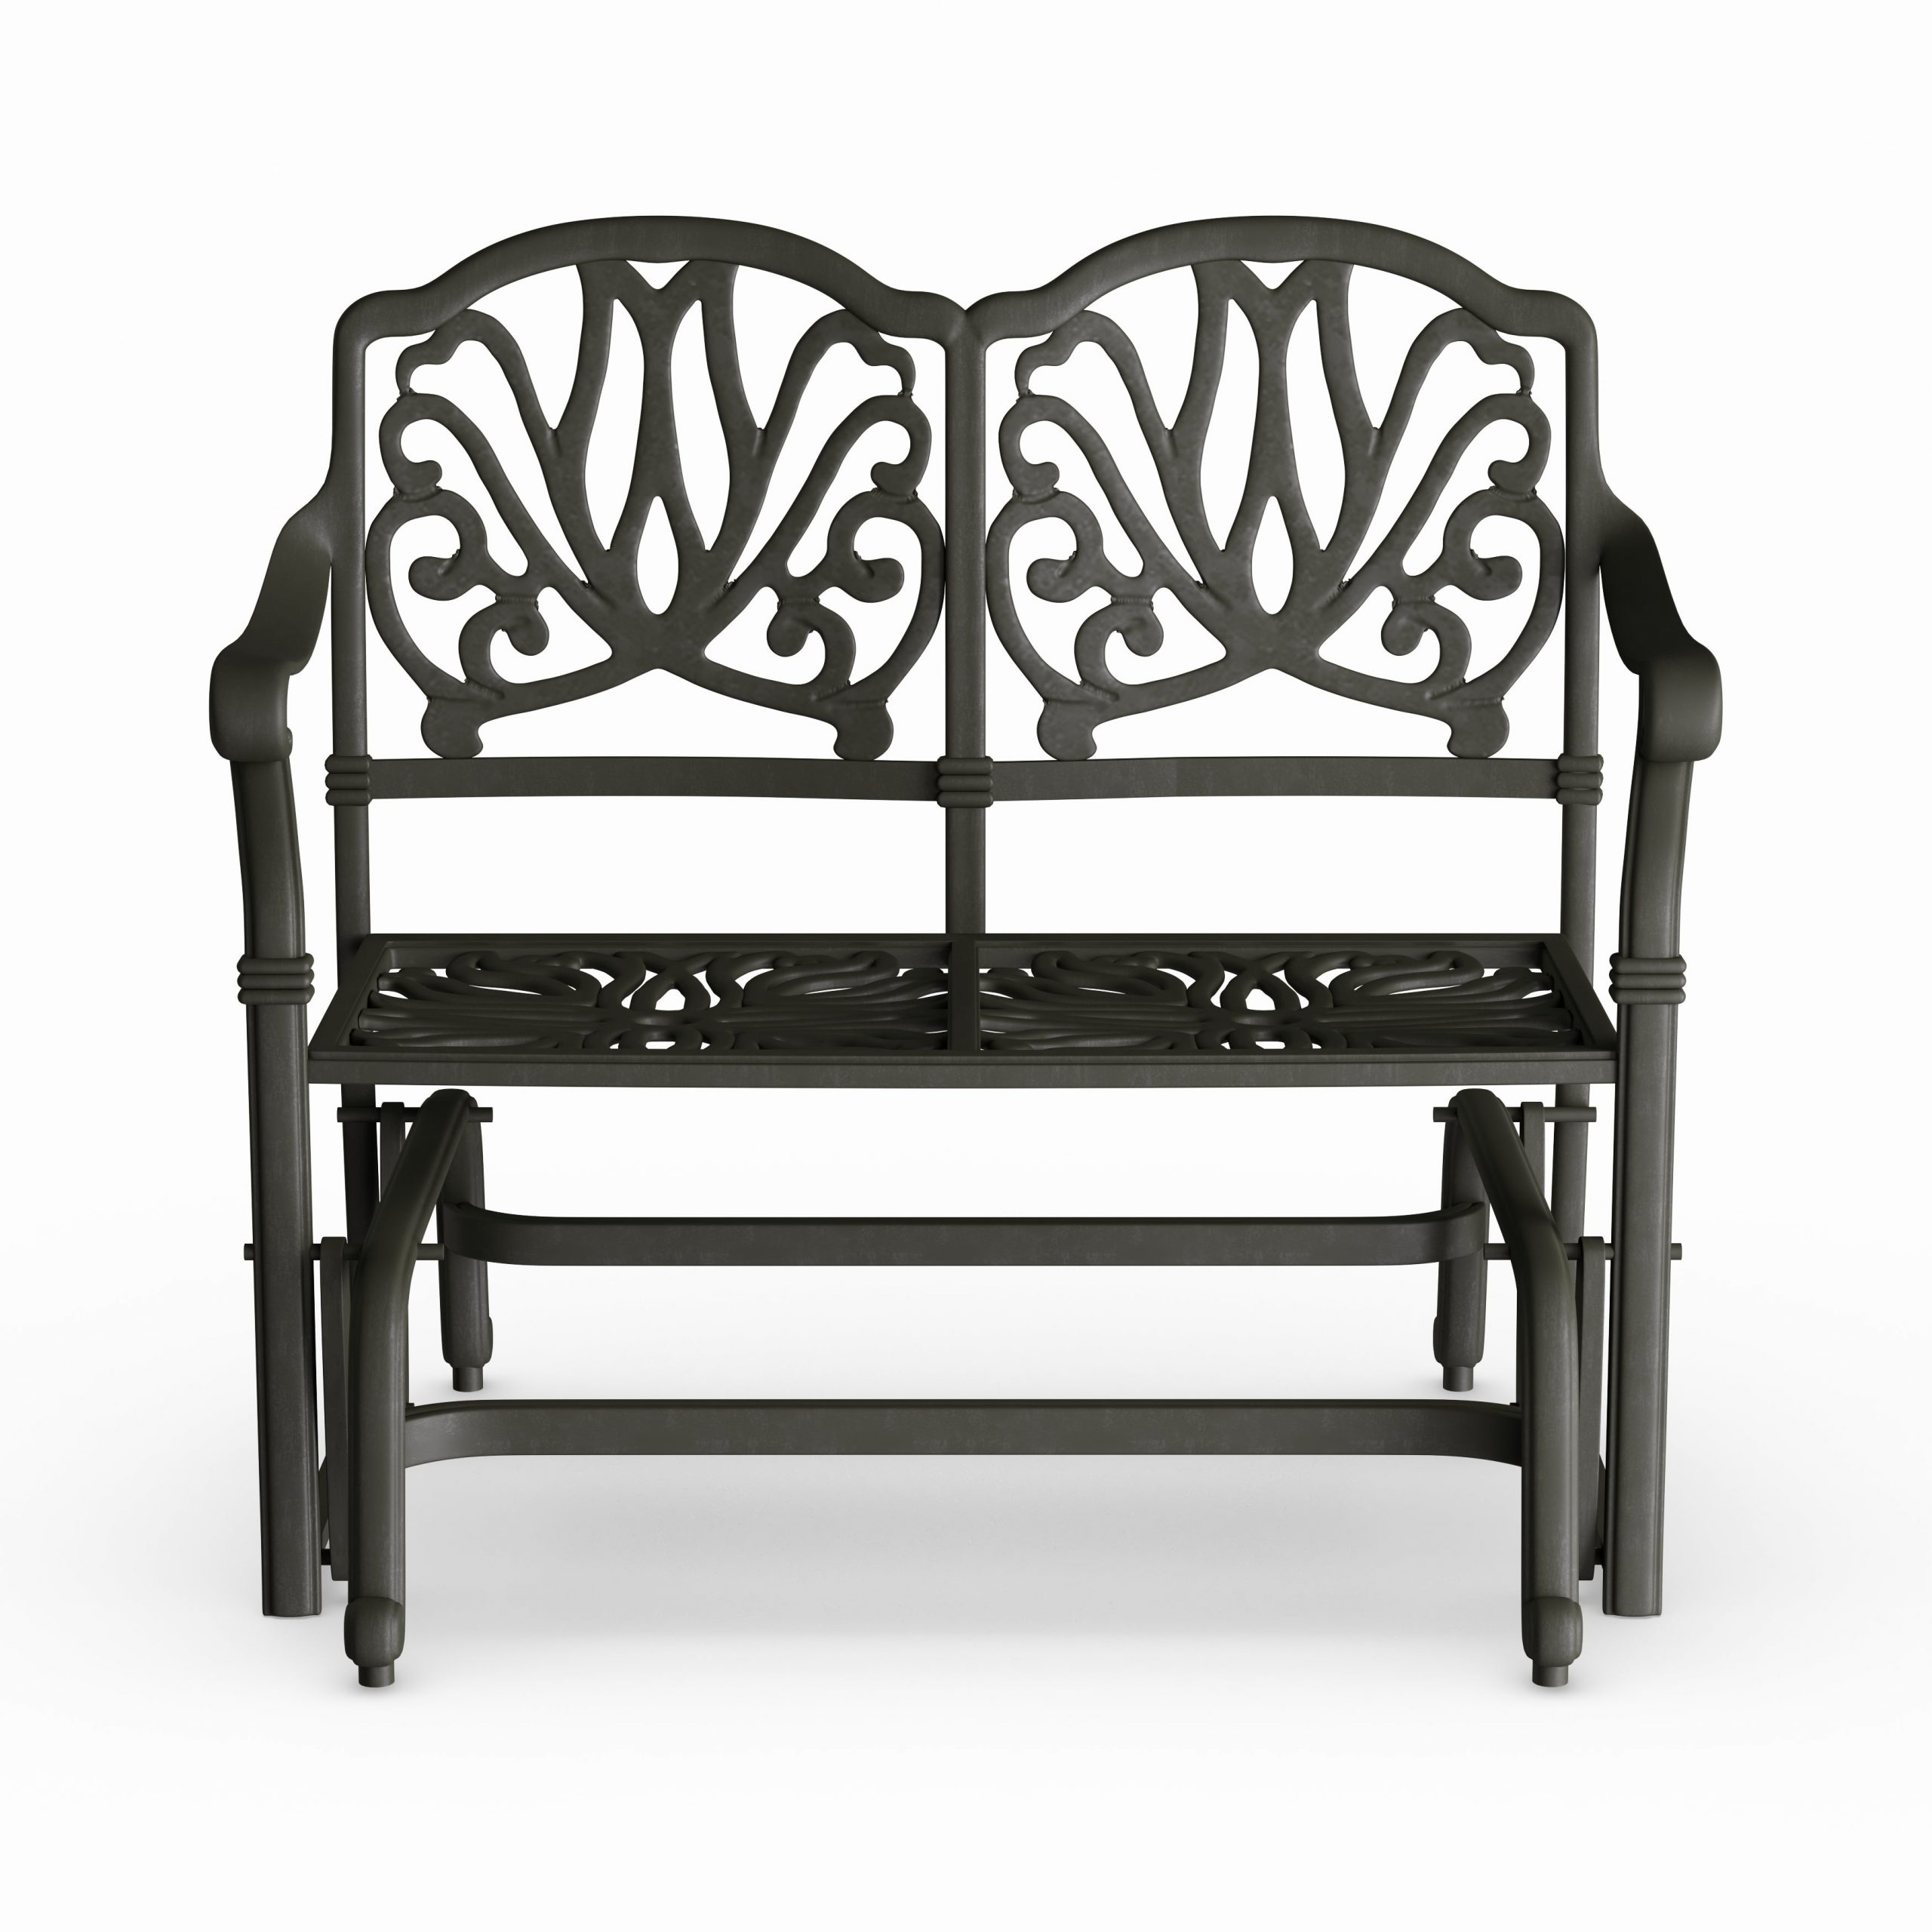 Havenside Home Avalon Cast Aluminum Glider Bench With Seat Cushion Pertaining To Aluminum Glider Benches With Cushion (View 23 of 25)